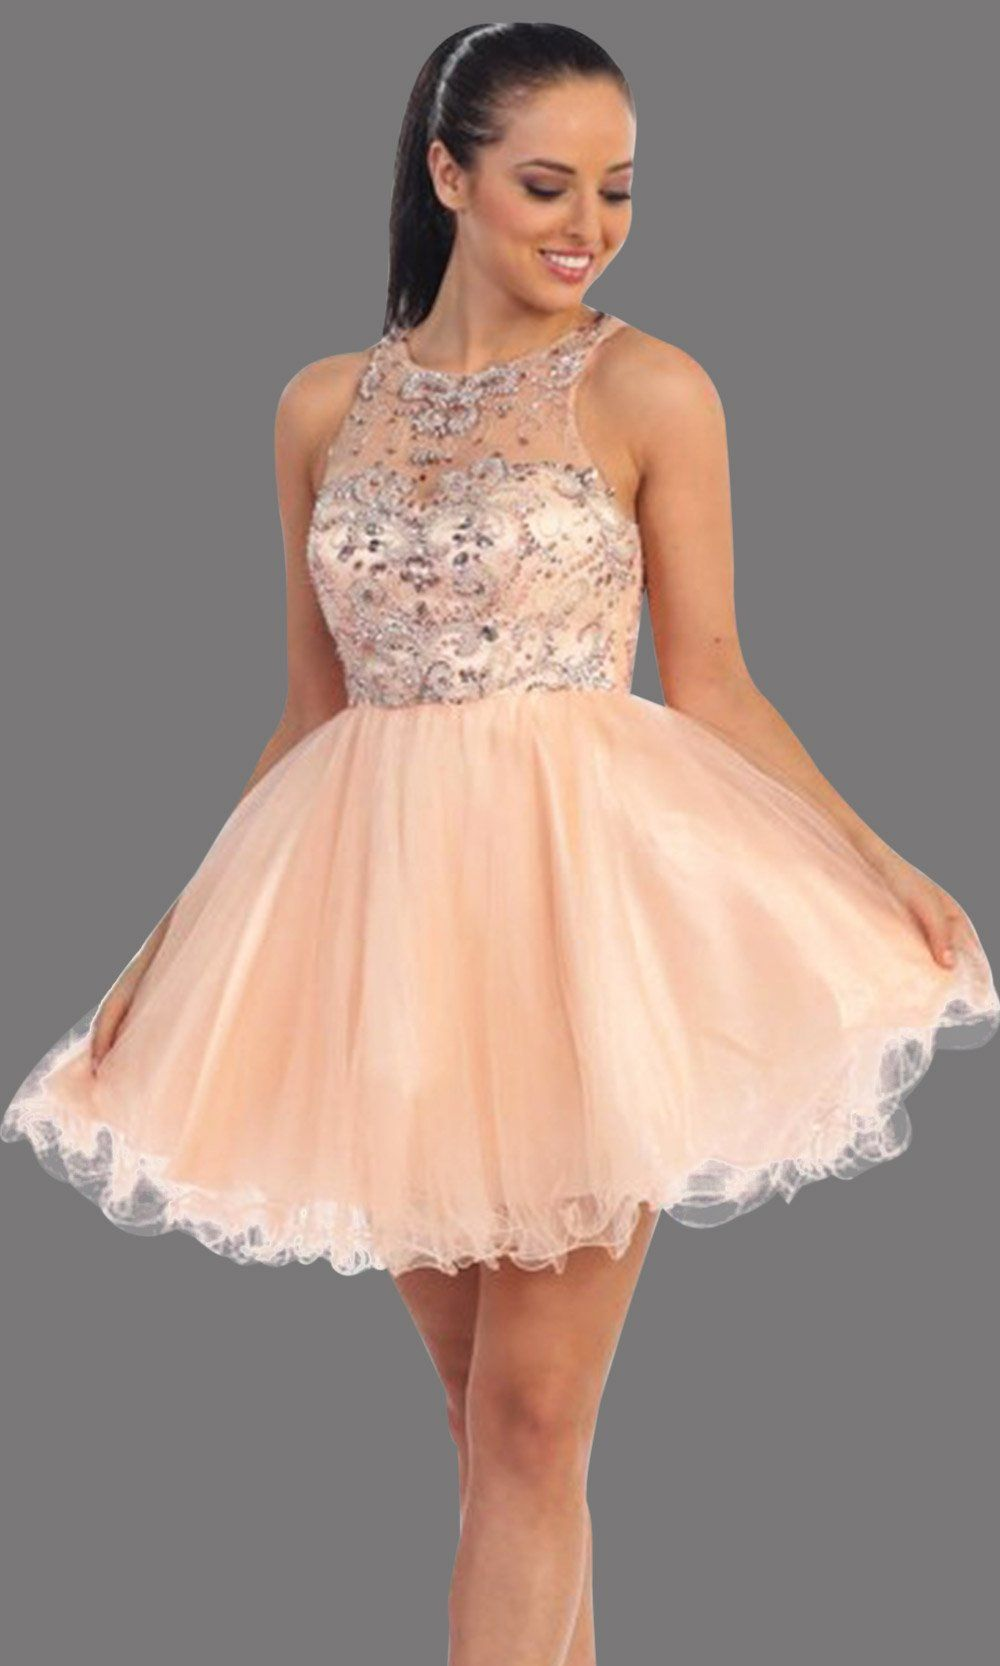 It S Your Day Boutique Wedding Dress Shop In Ontario Wedding Dresses Bridesmaids And More Peach Prom Dresses Dresses Grad Dresses [ 1666 x 1000 Pixel ]